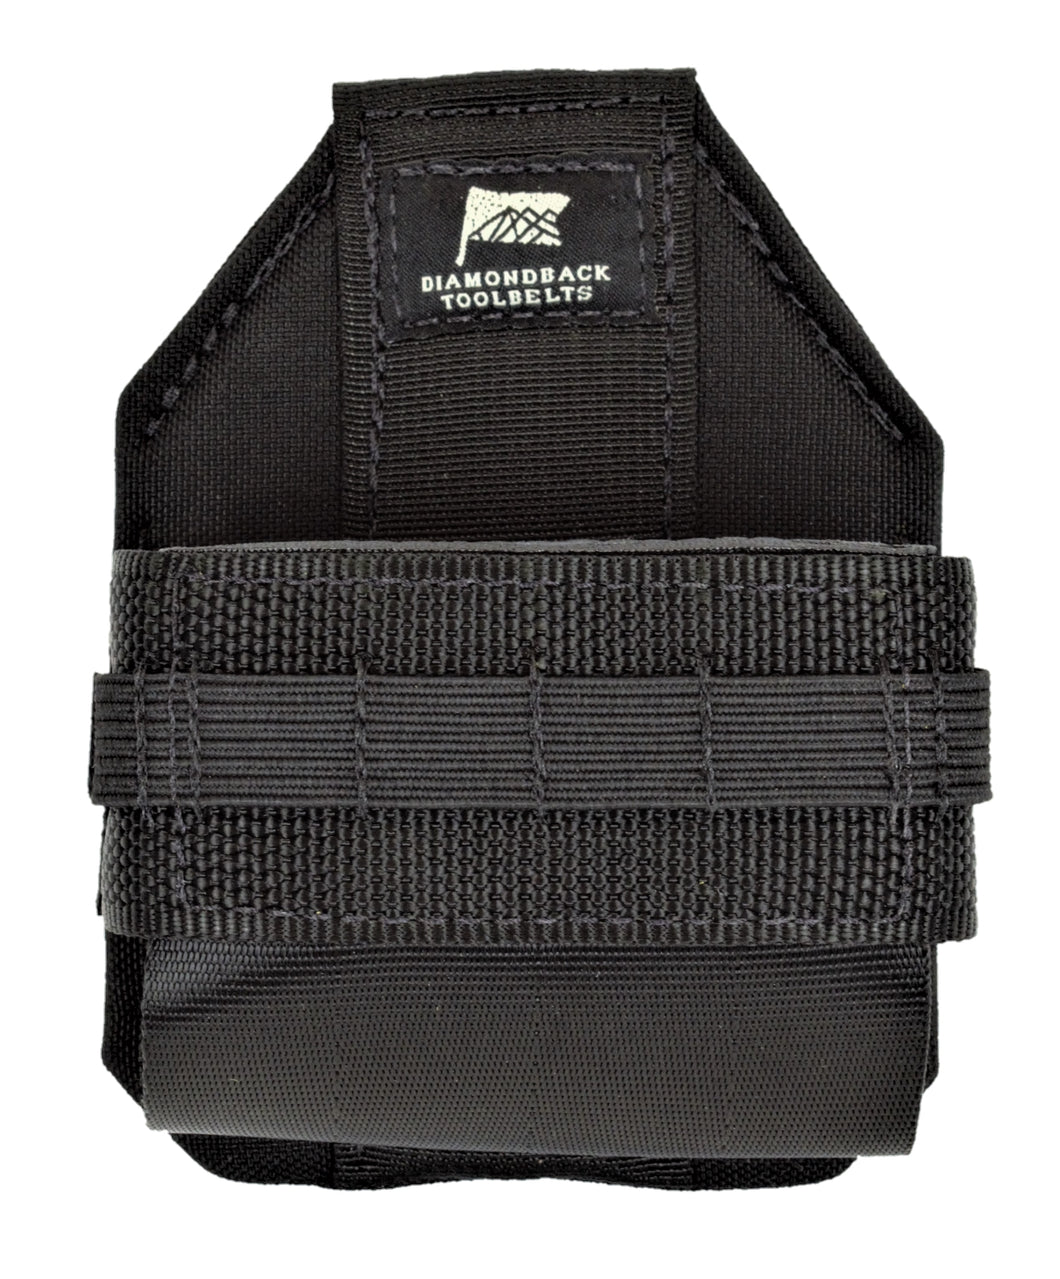 Diamondback toolbelt Easy-Release Tape Holster – Deluxe is available from Top Class Gears NZ / SIG Tools. Grabs yours today!